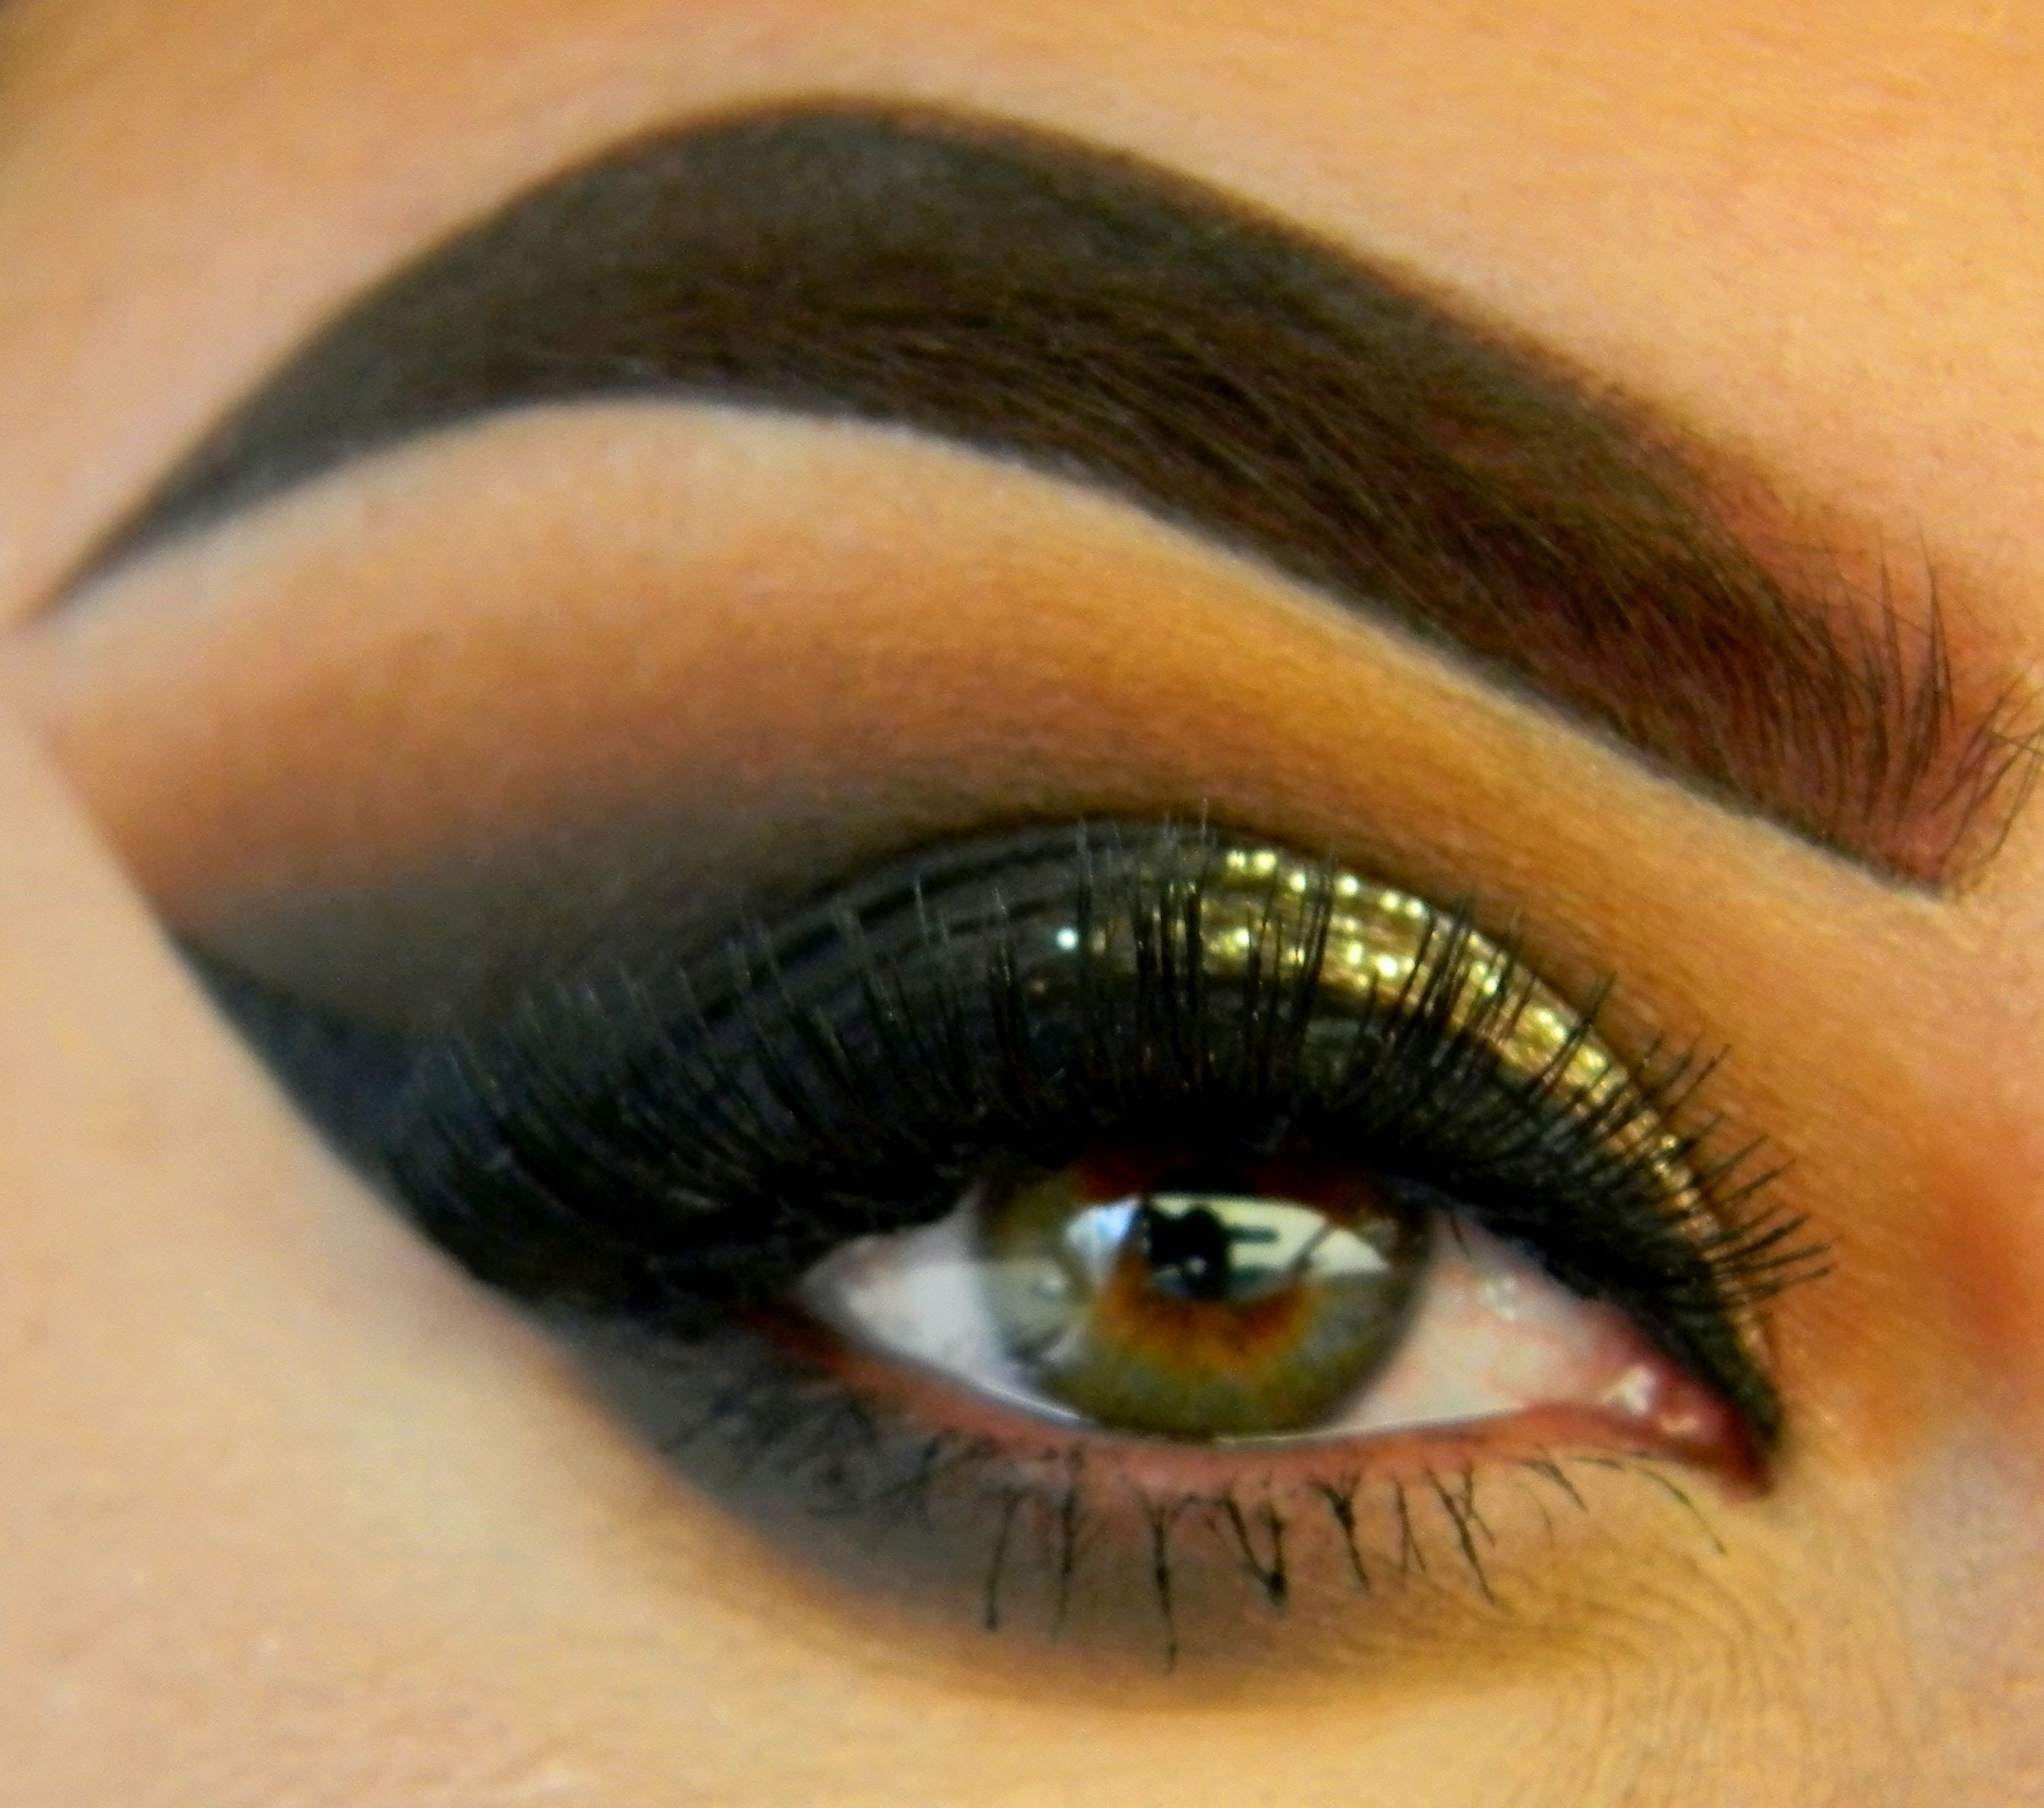 Sharp Edge Eyeshadow Look Without The